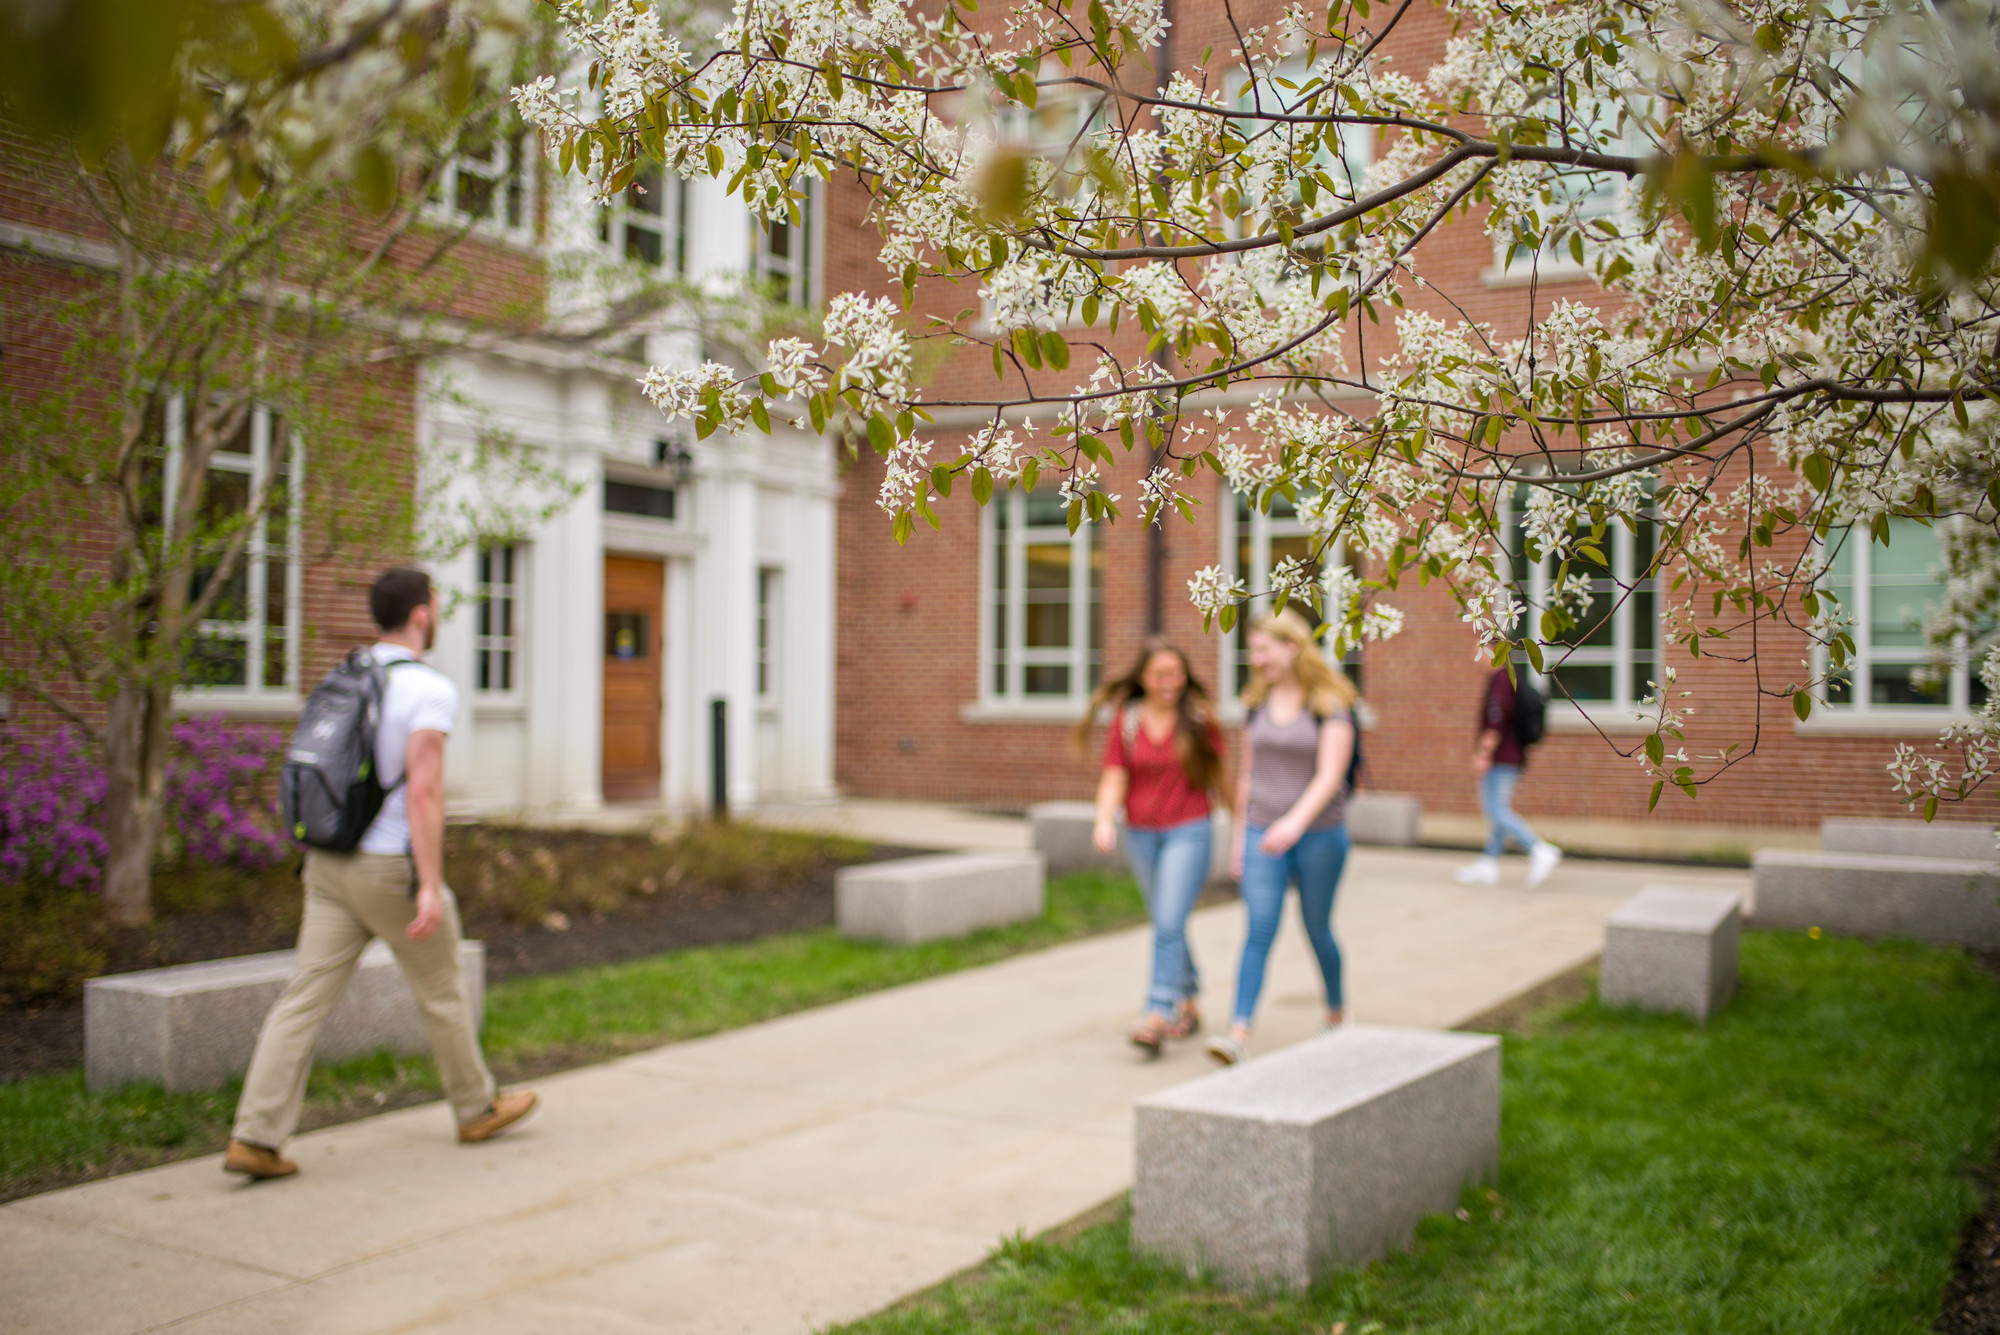 Students walking on campus on a spring day